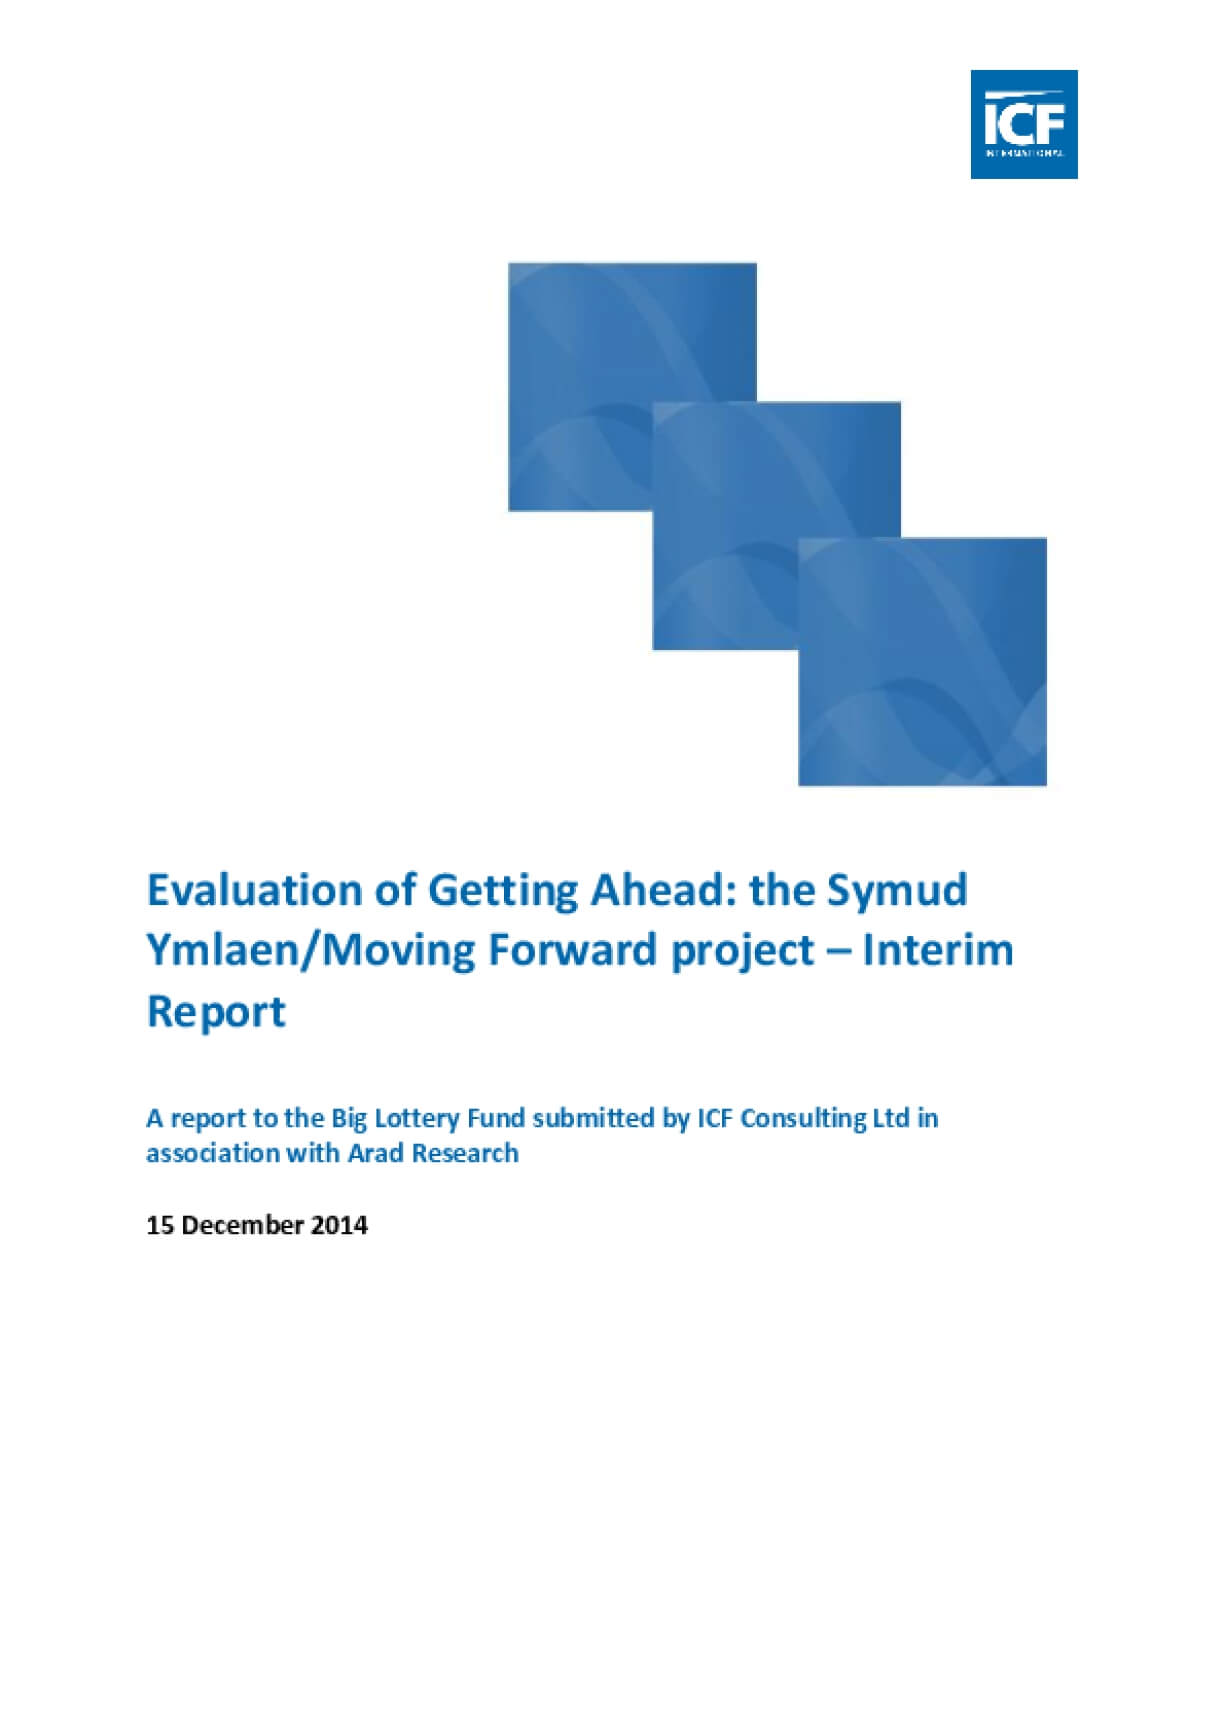 Evaluation of Getting Ahead: the Symud Ymlaen/Moving Forward project – Interim Report